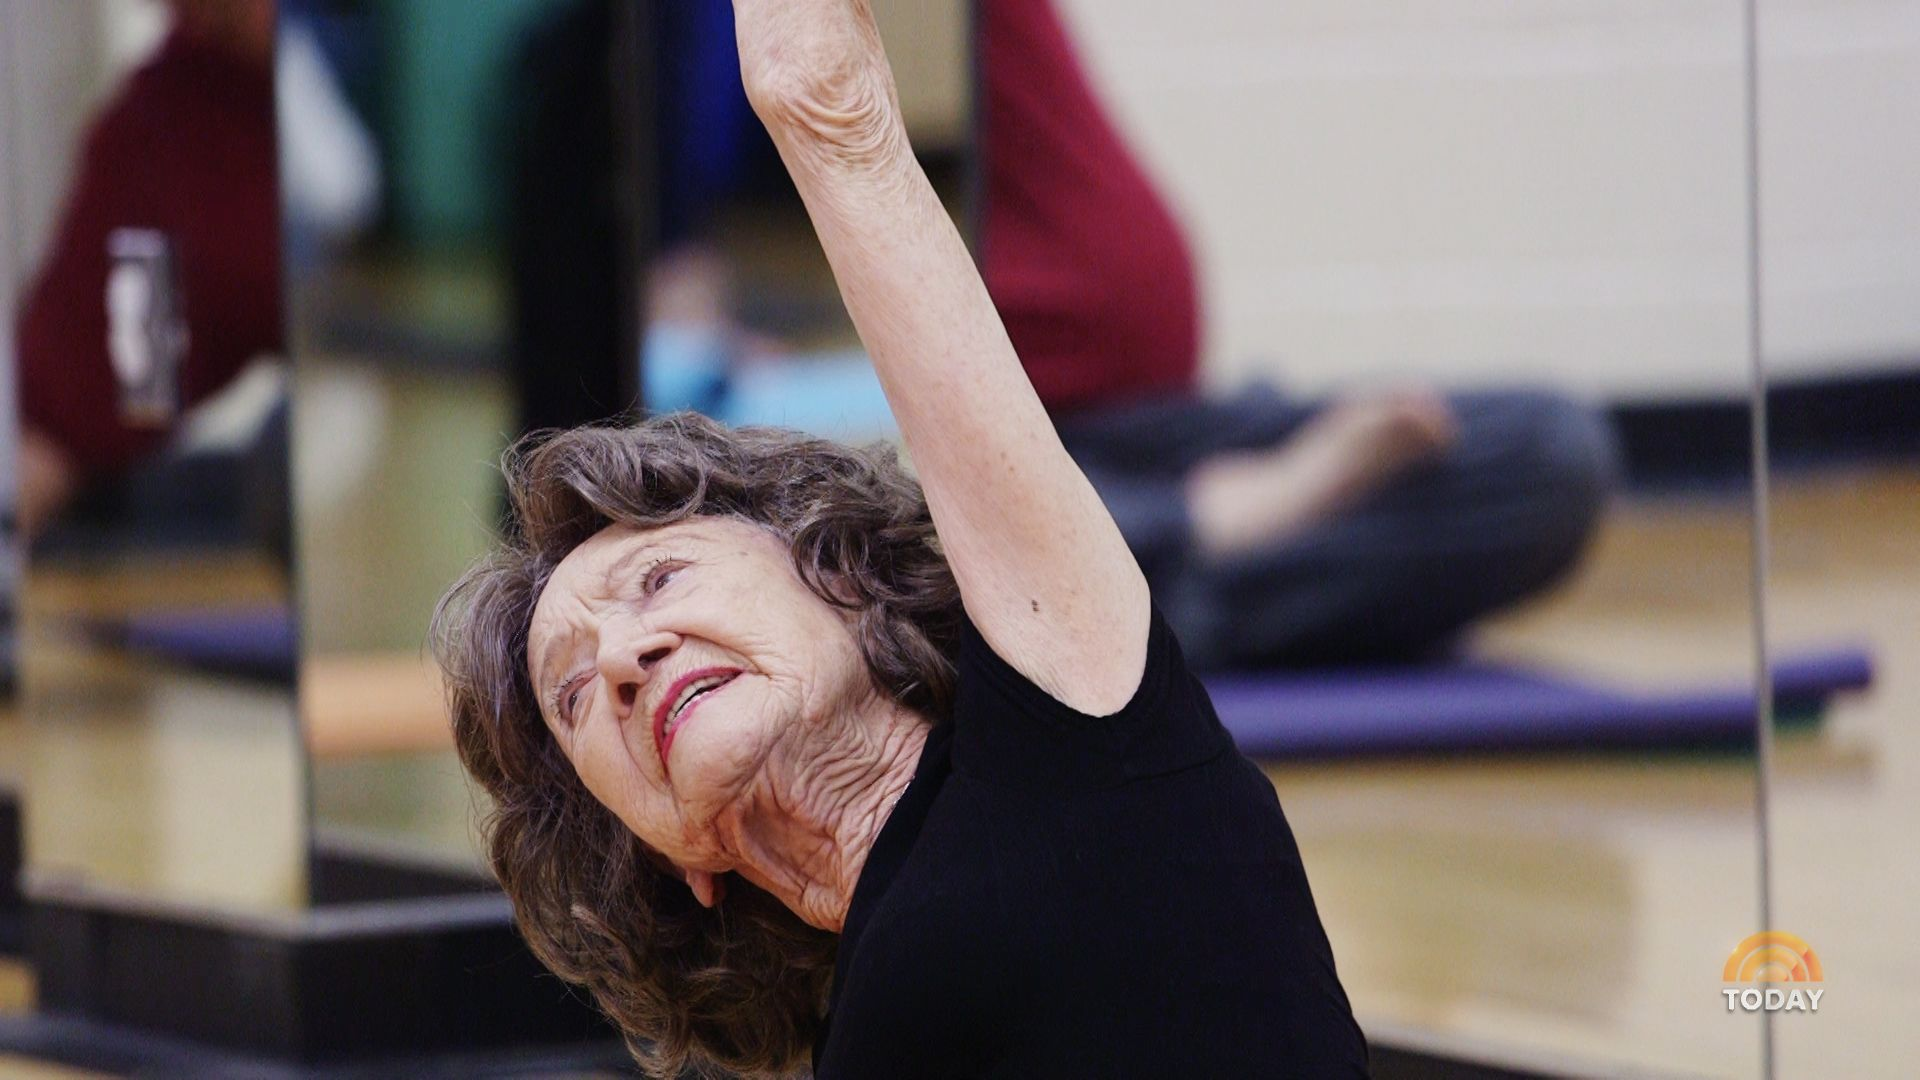 5 secrets for staying positive from world's oldest yoga teacher, 96